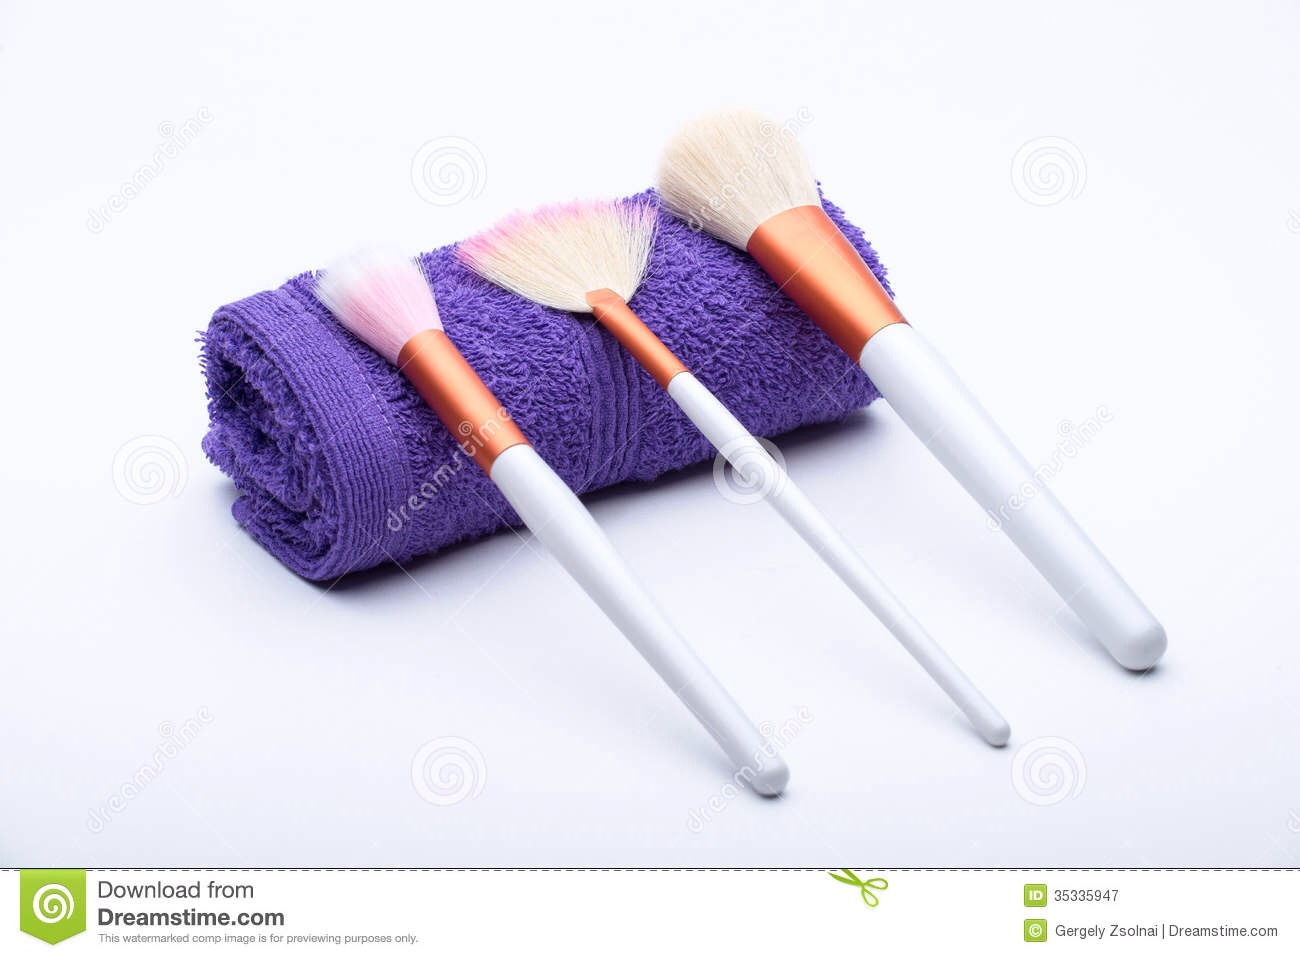 Step 4: Leave the brushes on a towel or cloth to dry.